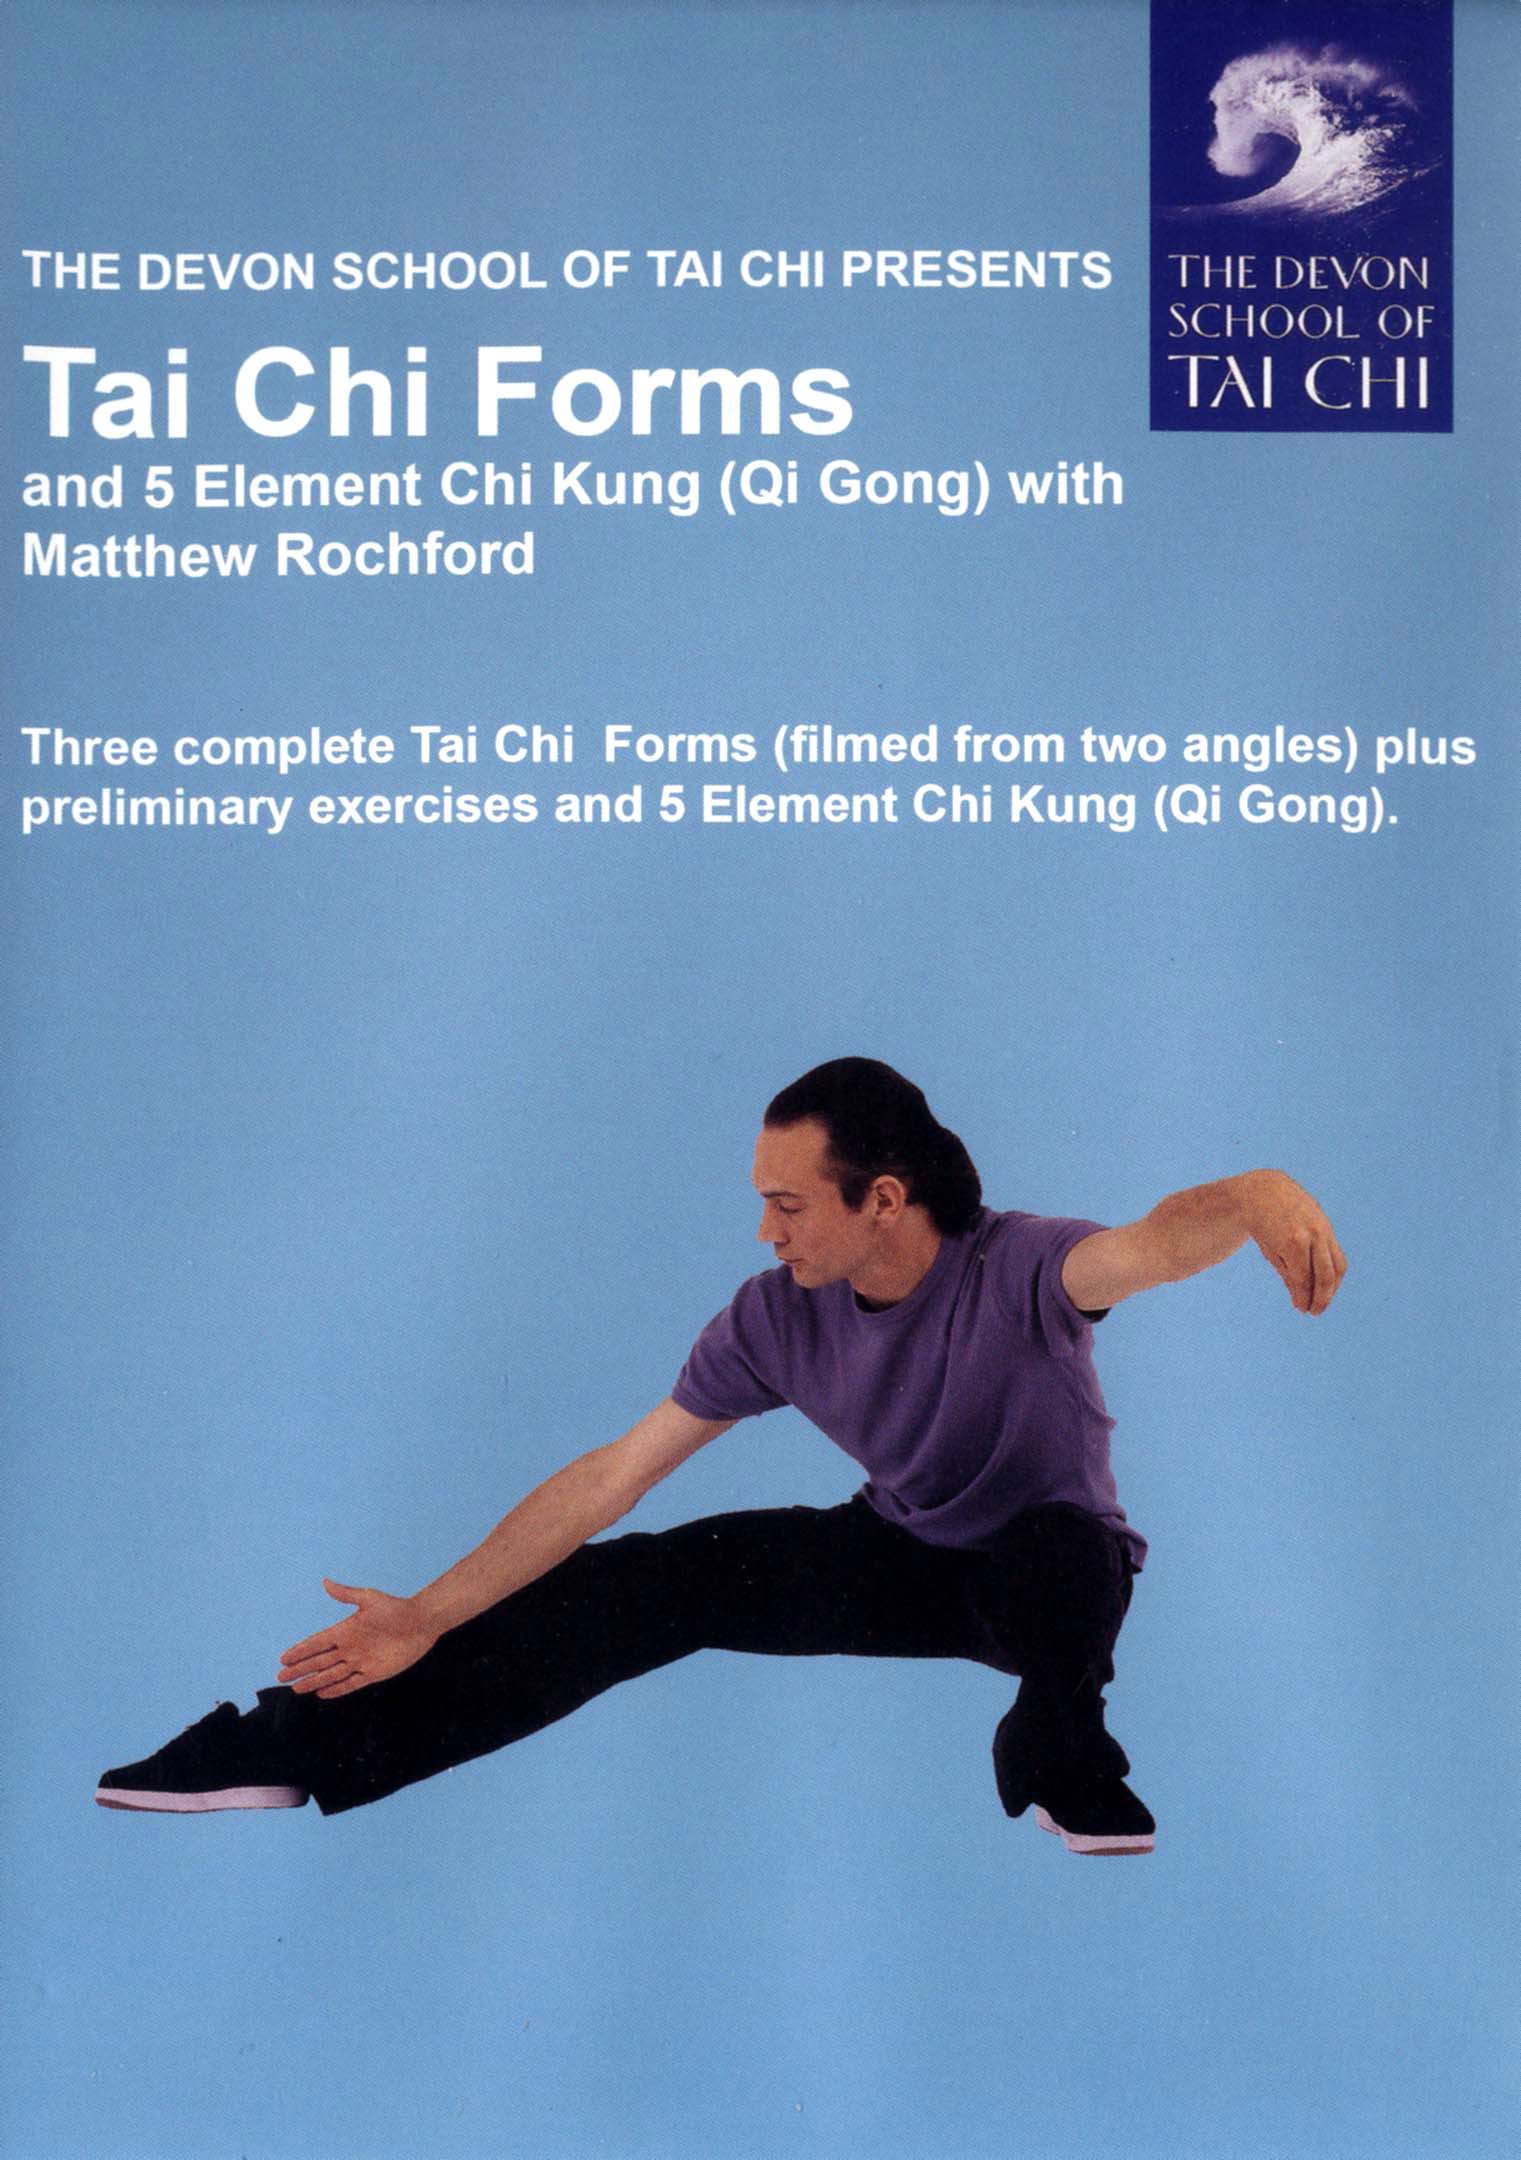 Tai Chi Forms and 5 Element Chi Kung (Qi Gong)